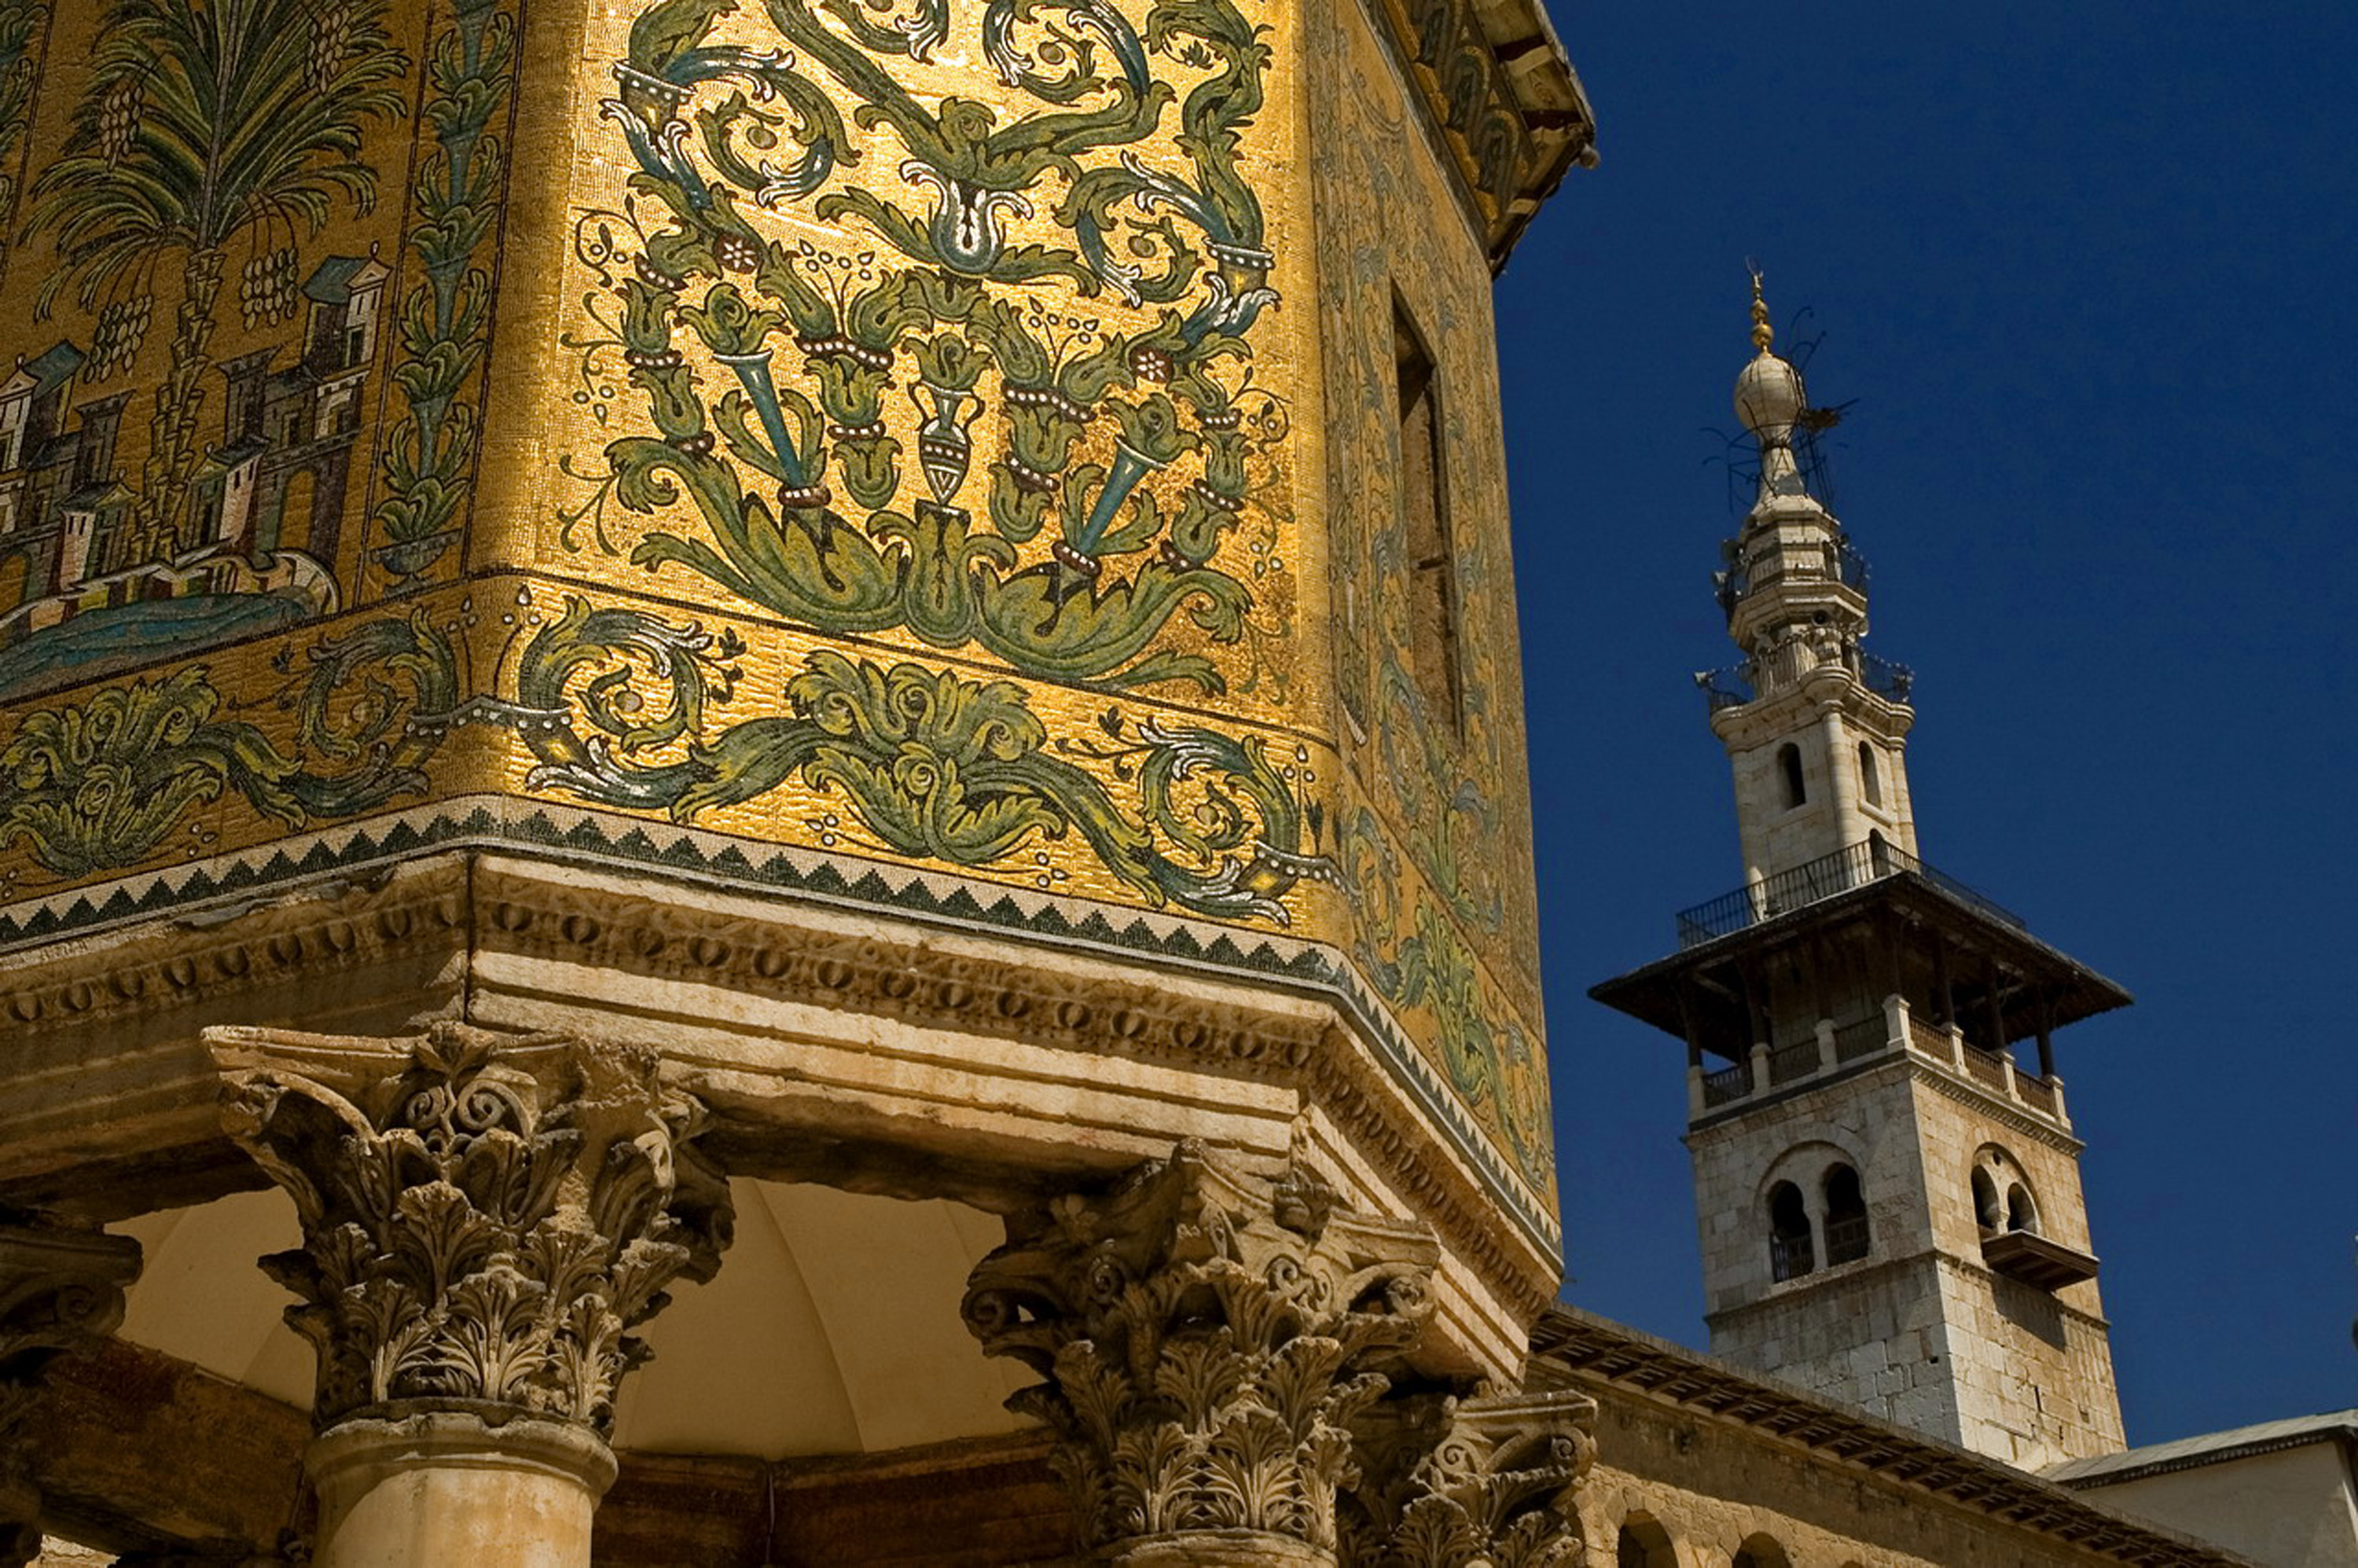 The most beautiful mosques to visit: The Great Umayyed Mosque of Damascus, Syria, and Khazne